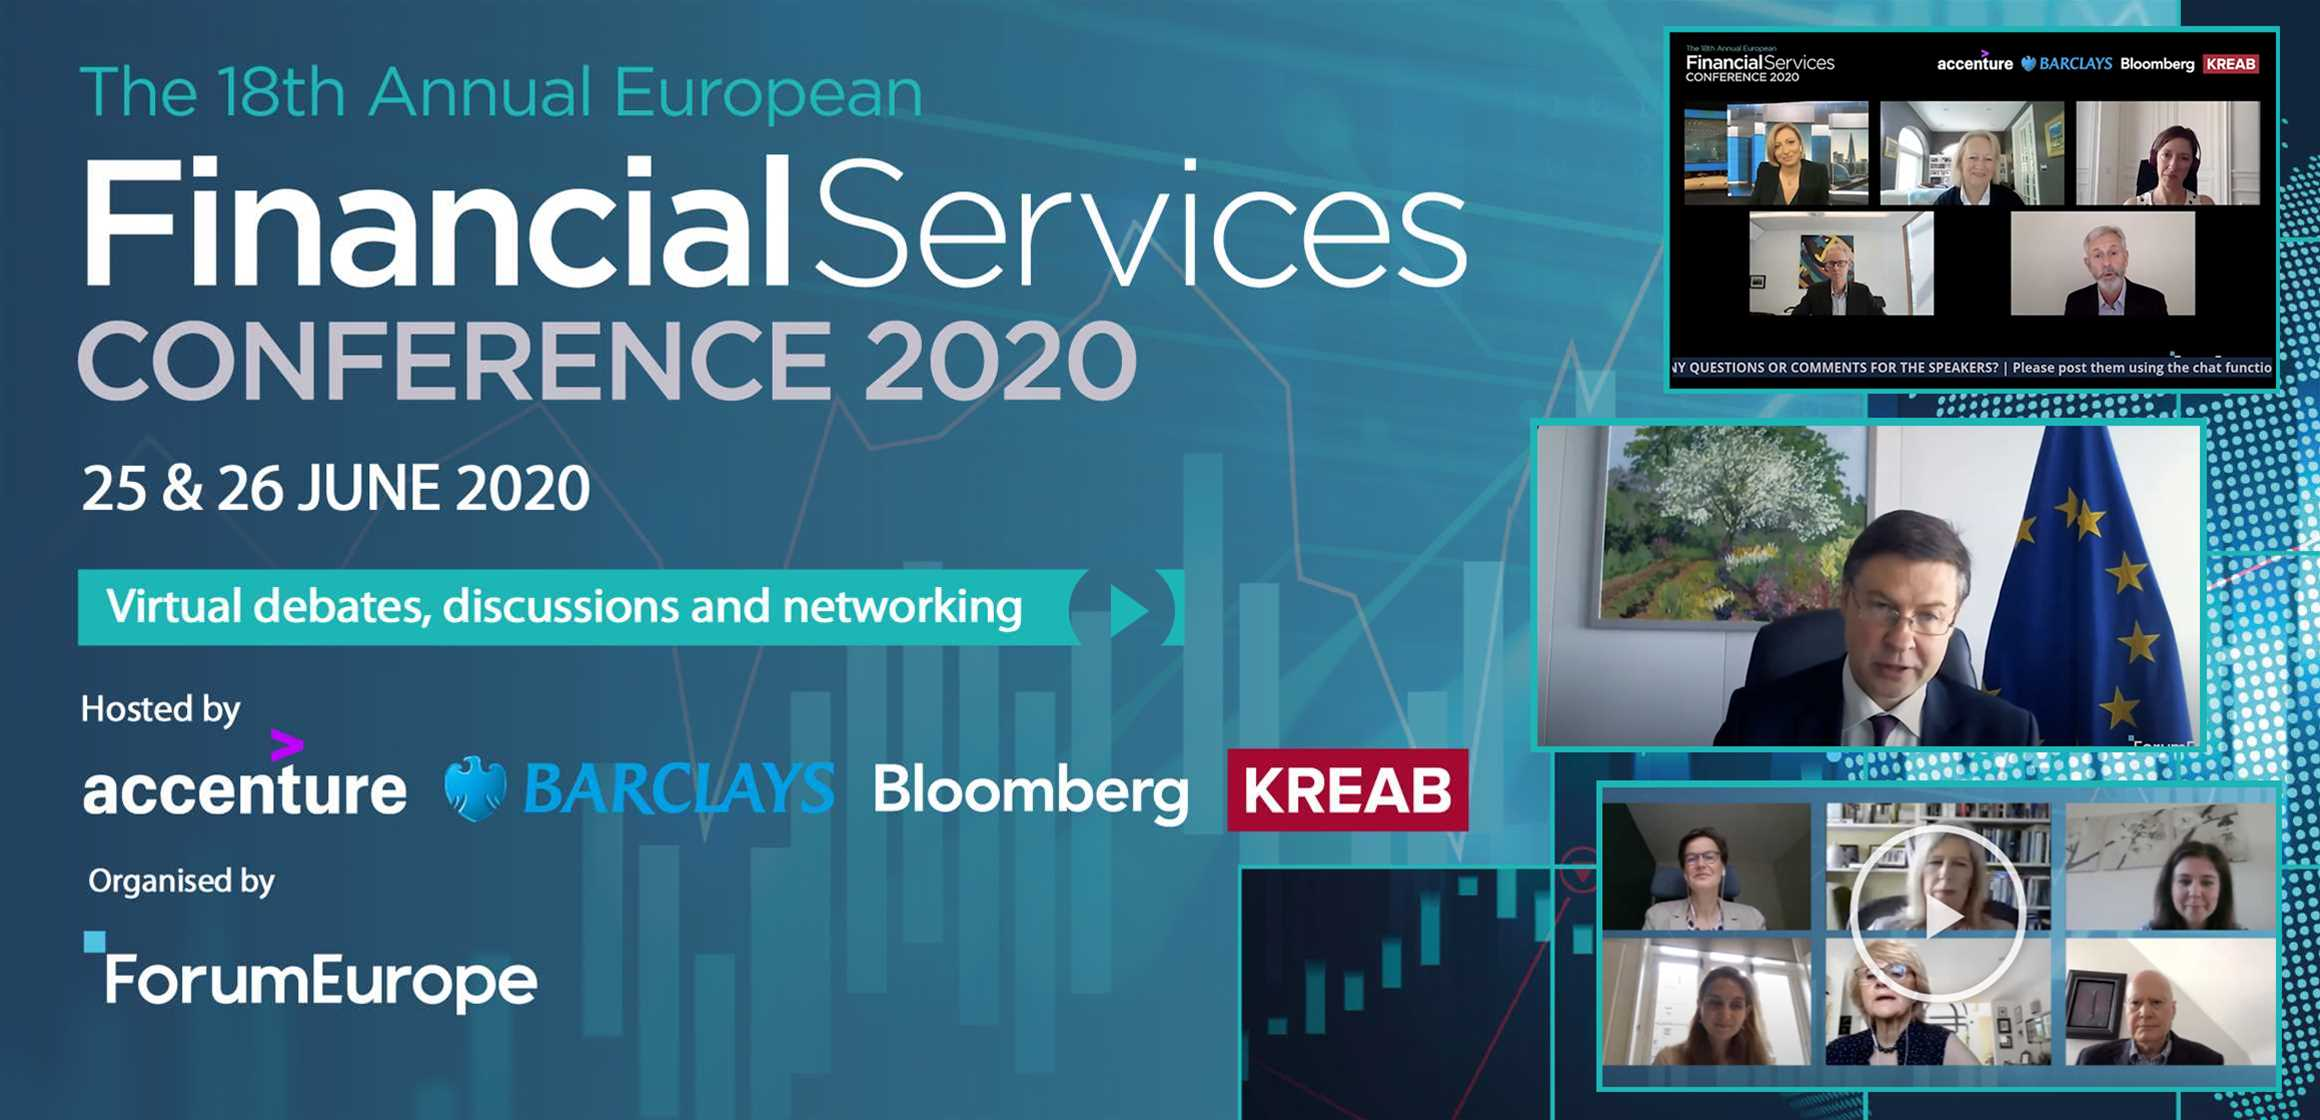 The 18th Annual European Financial Services Conference - Embracing Change in a Time of Uncertainty